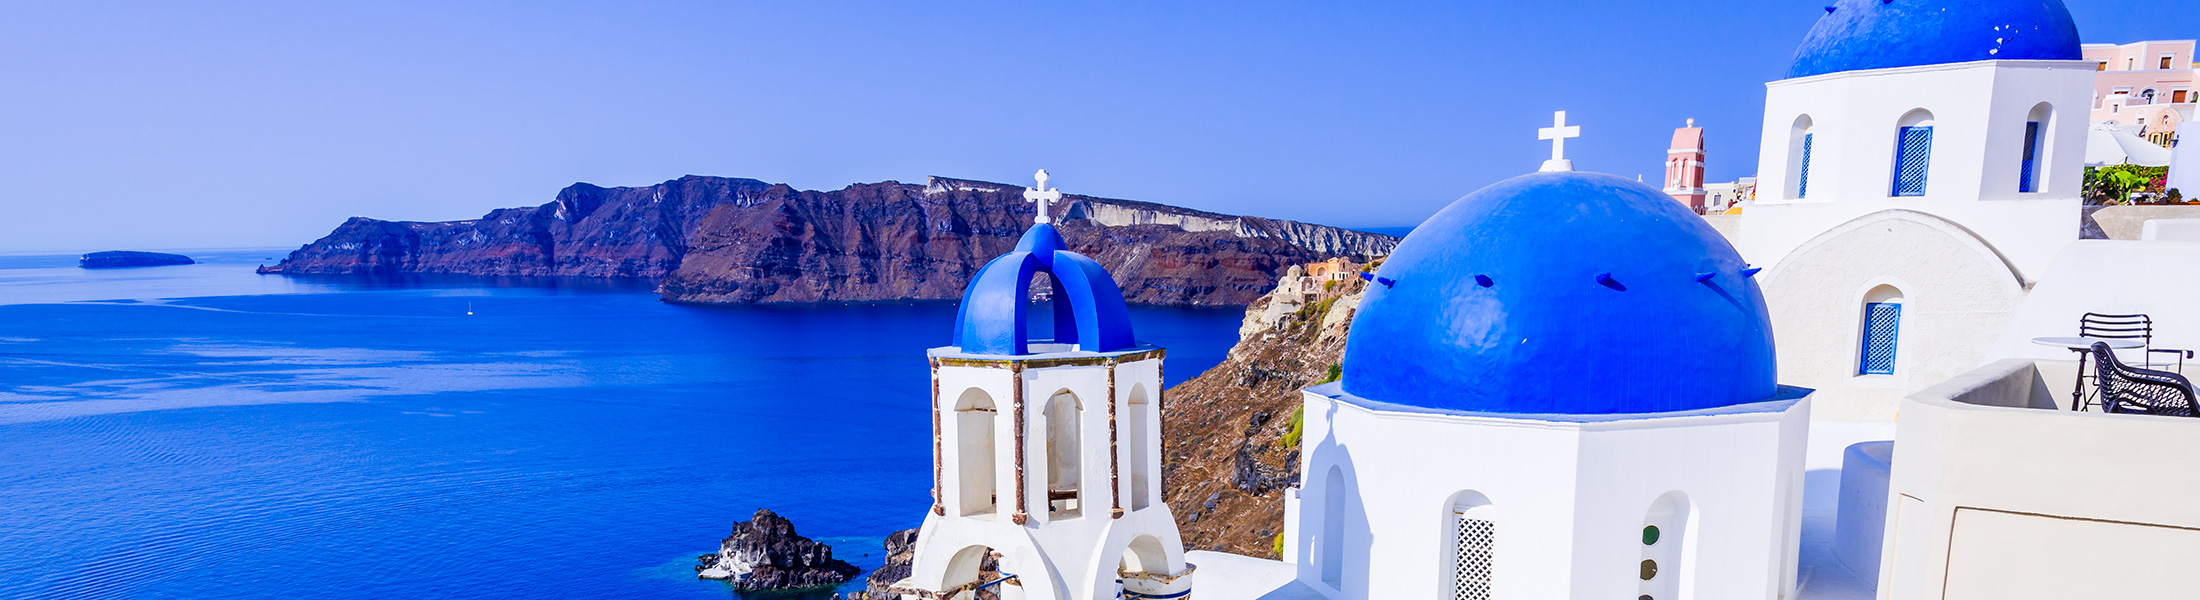 Rooftops and caldera in Santorini Greece in Europe